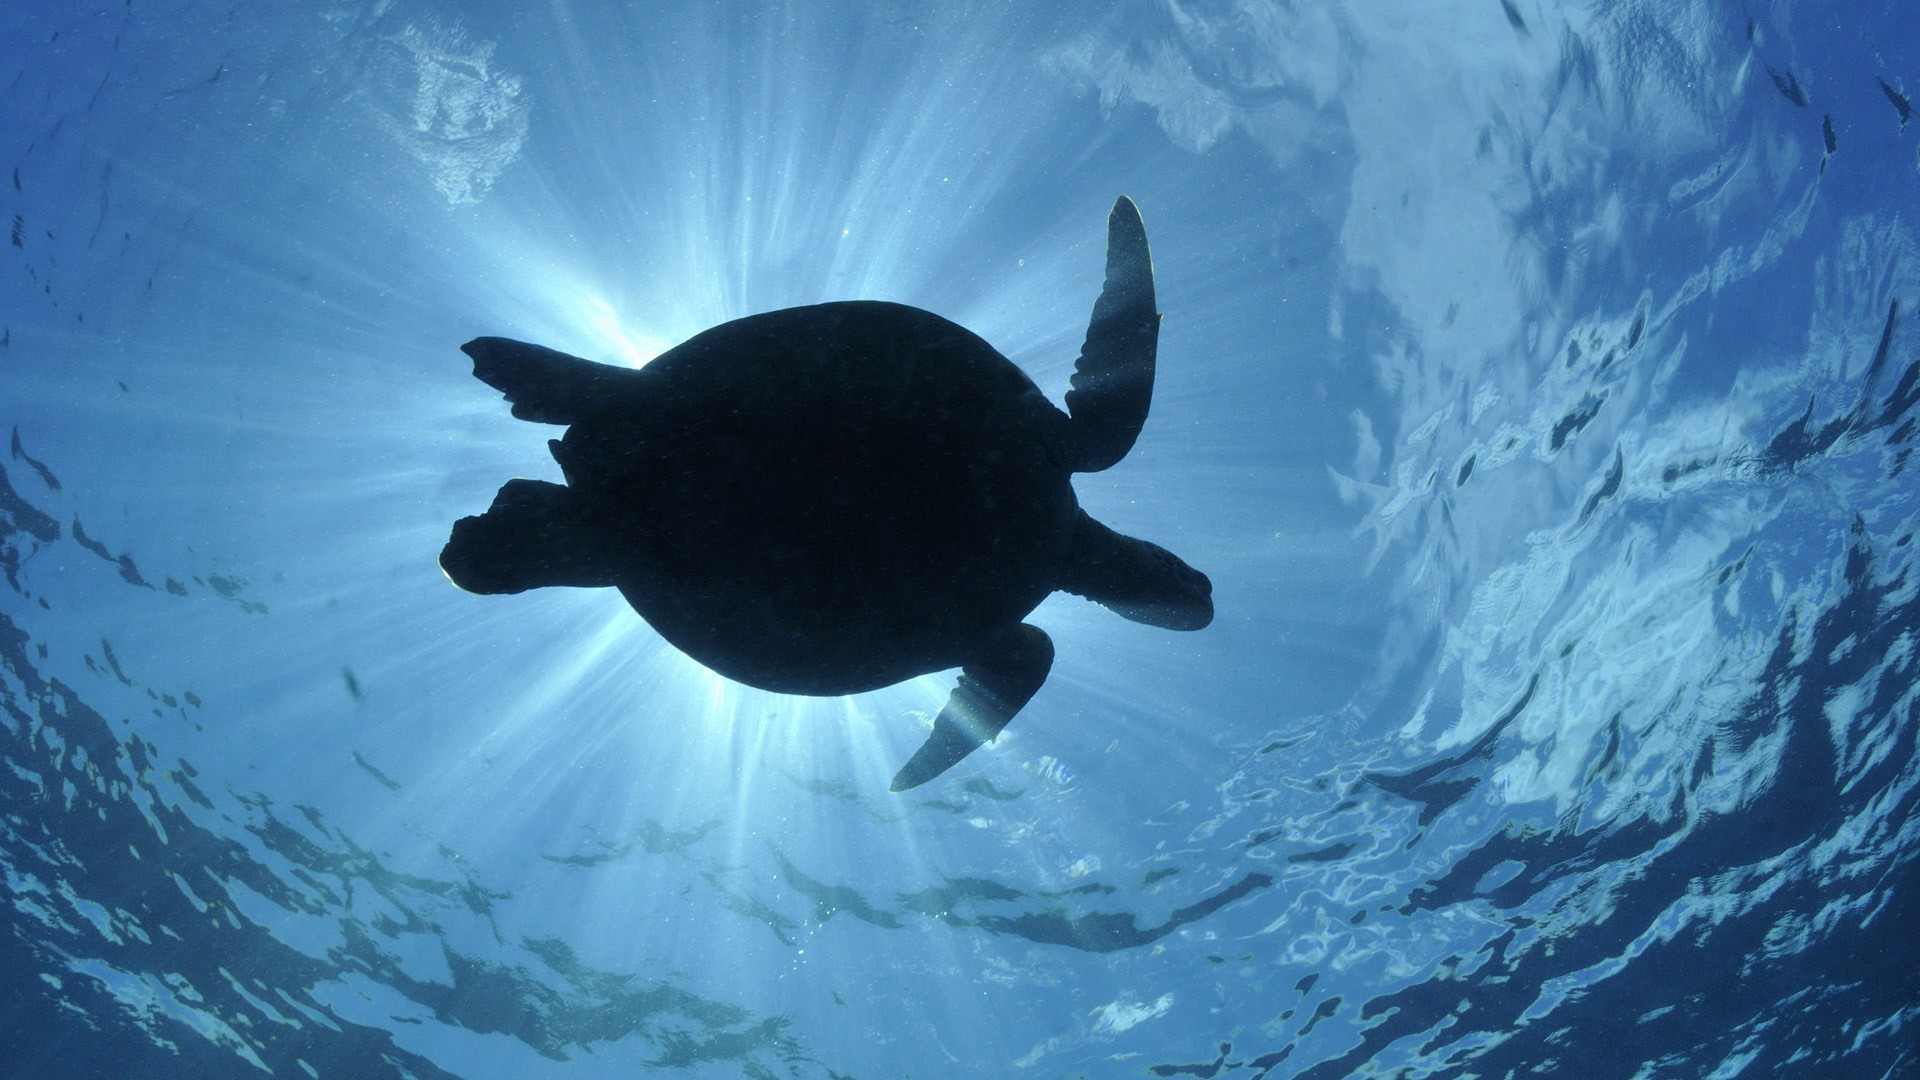 Hd Movie Wallpapers For Mobile Sea Water Turtle Wildlife Wallpapers Hd Desktop And